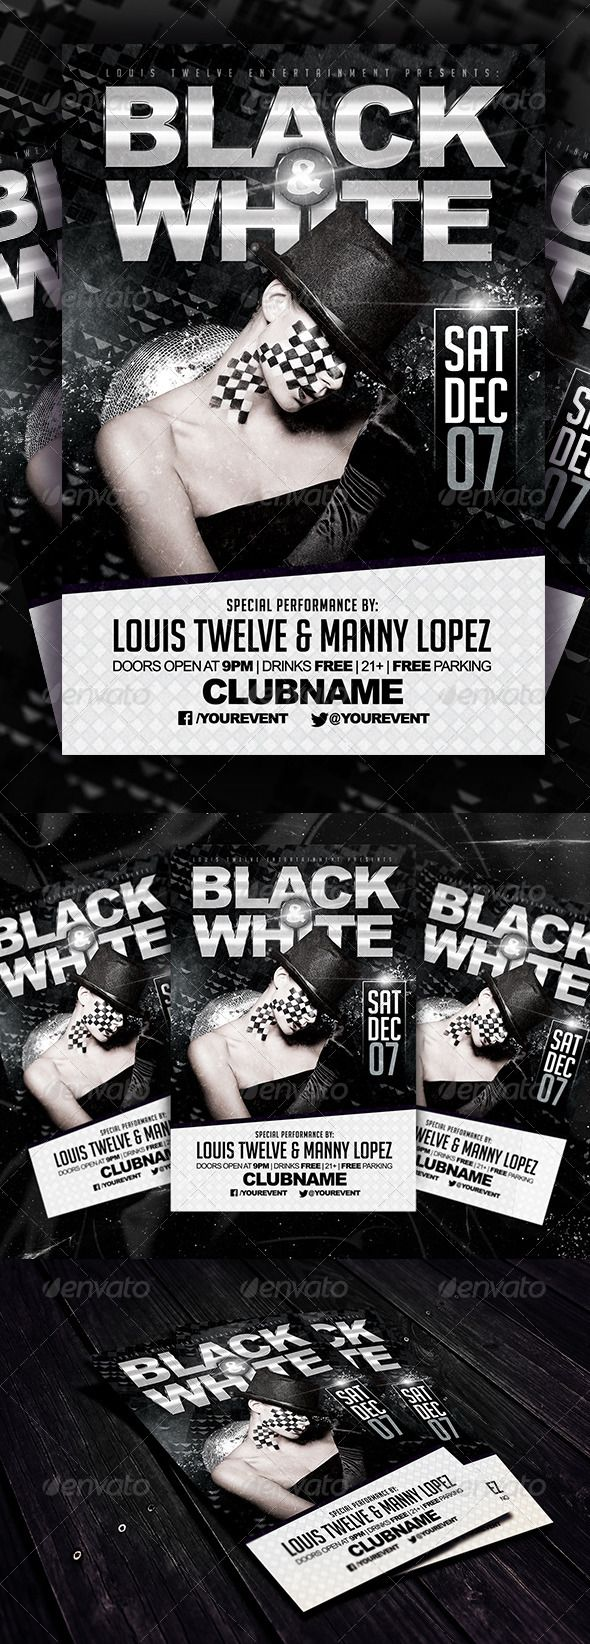 Black and White Party Flyer Template – Black and White Flyer Template